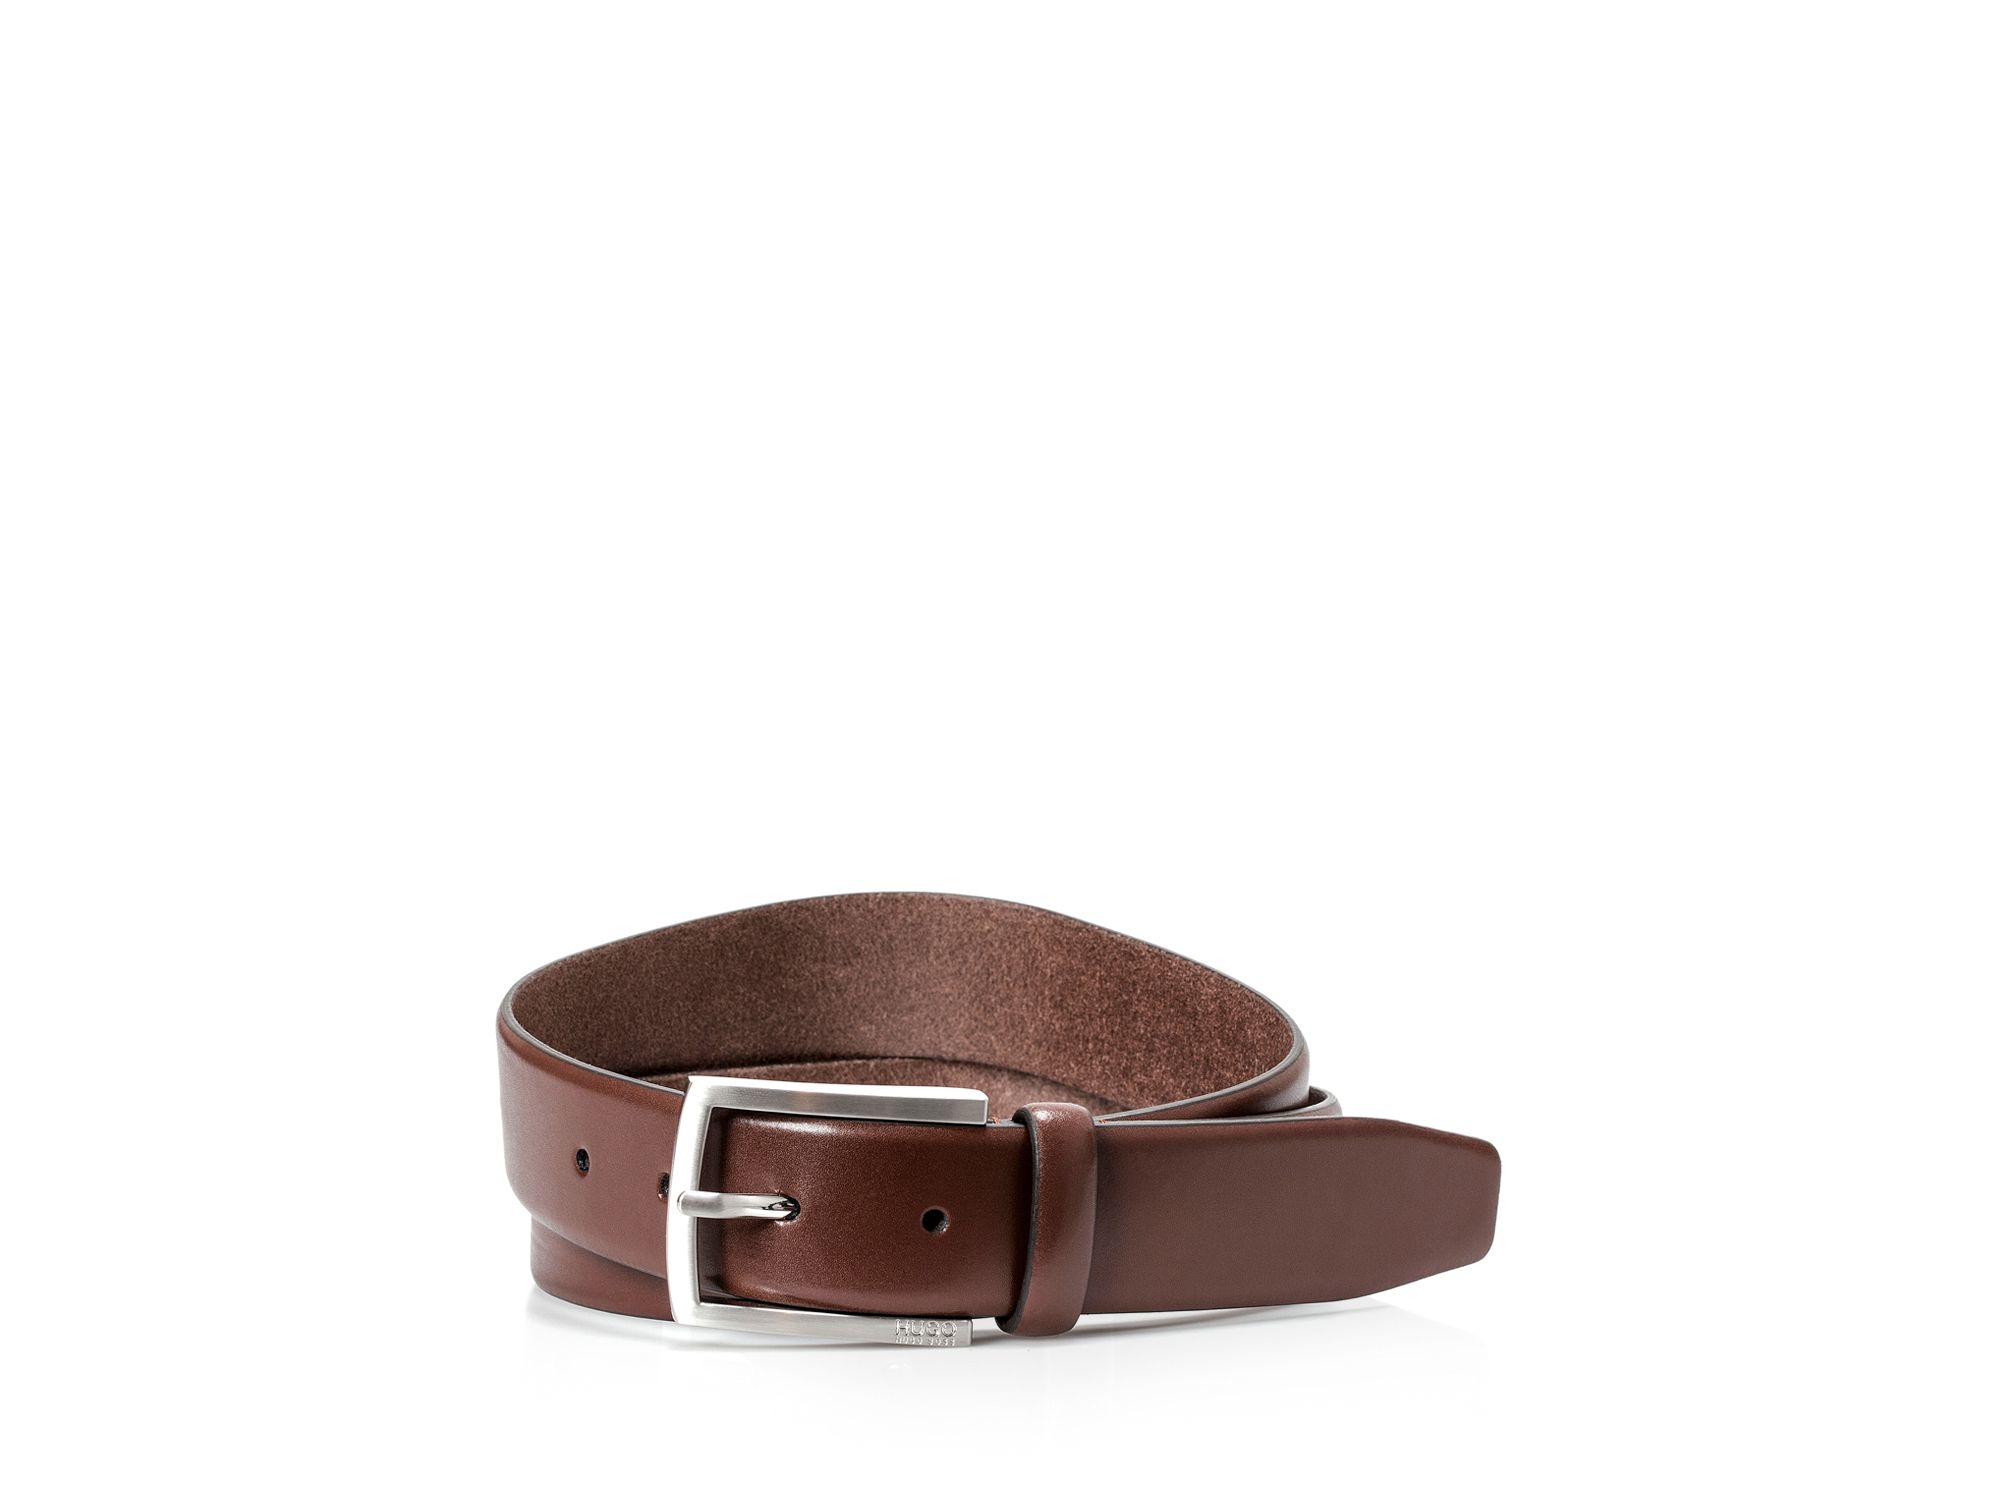 barney basic dress belt in brown for dk brown